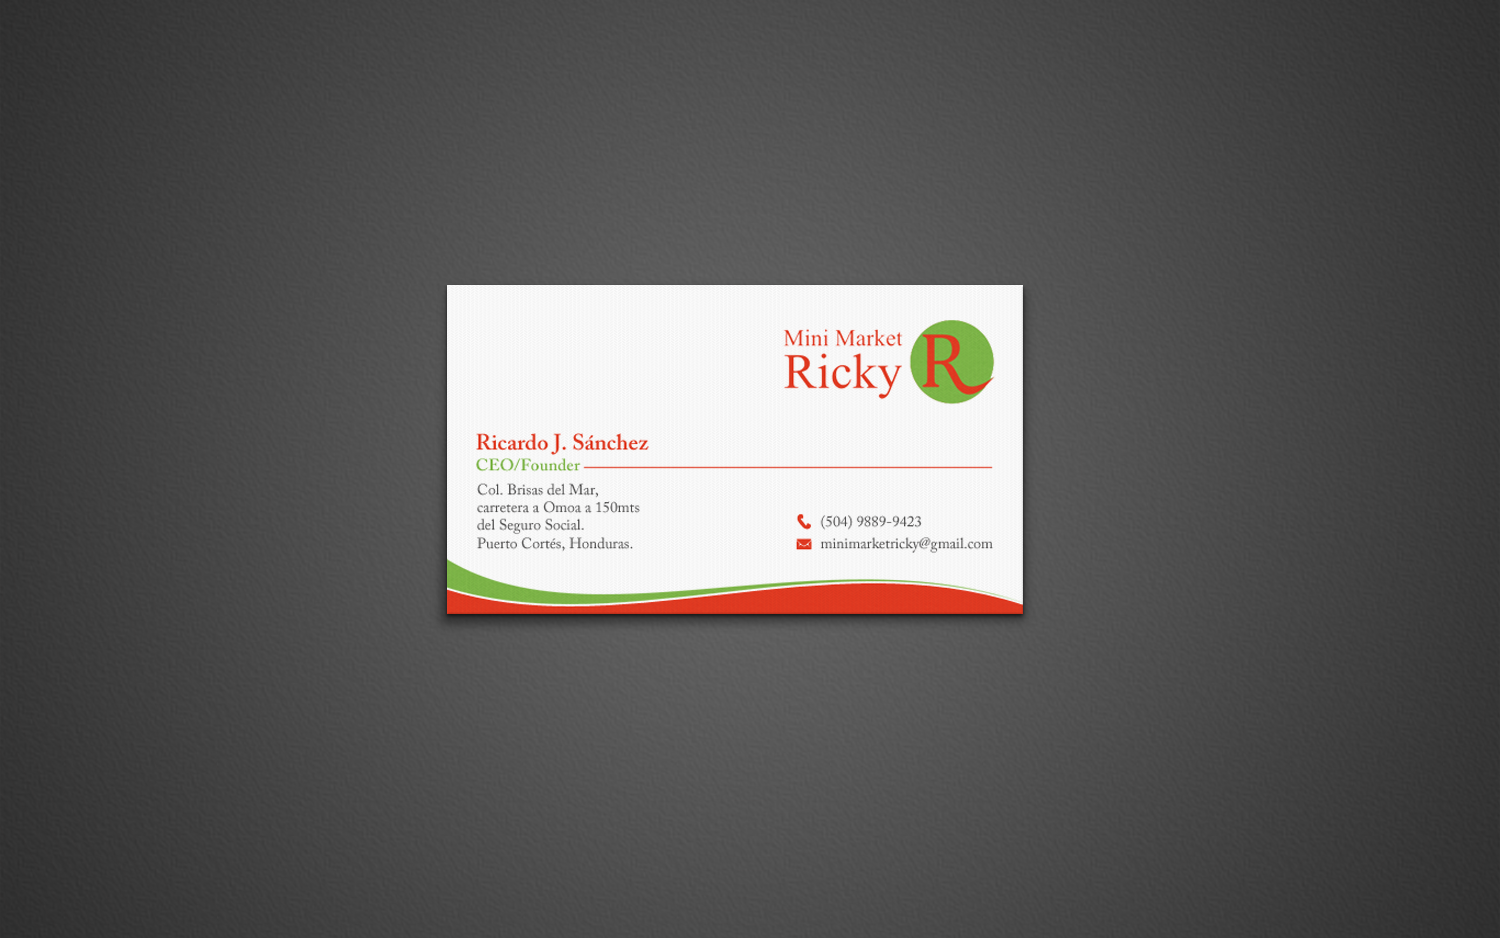 Upmarket serious business card design for mini market ricky by business card design by chandrayaaneative for mini market ricky business presentation cards design magicingreecefo Image collections